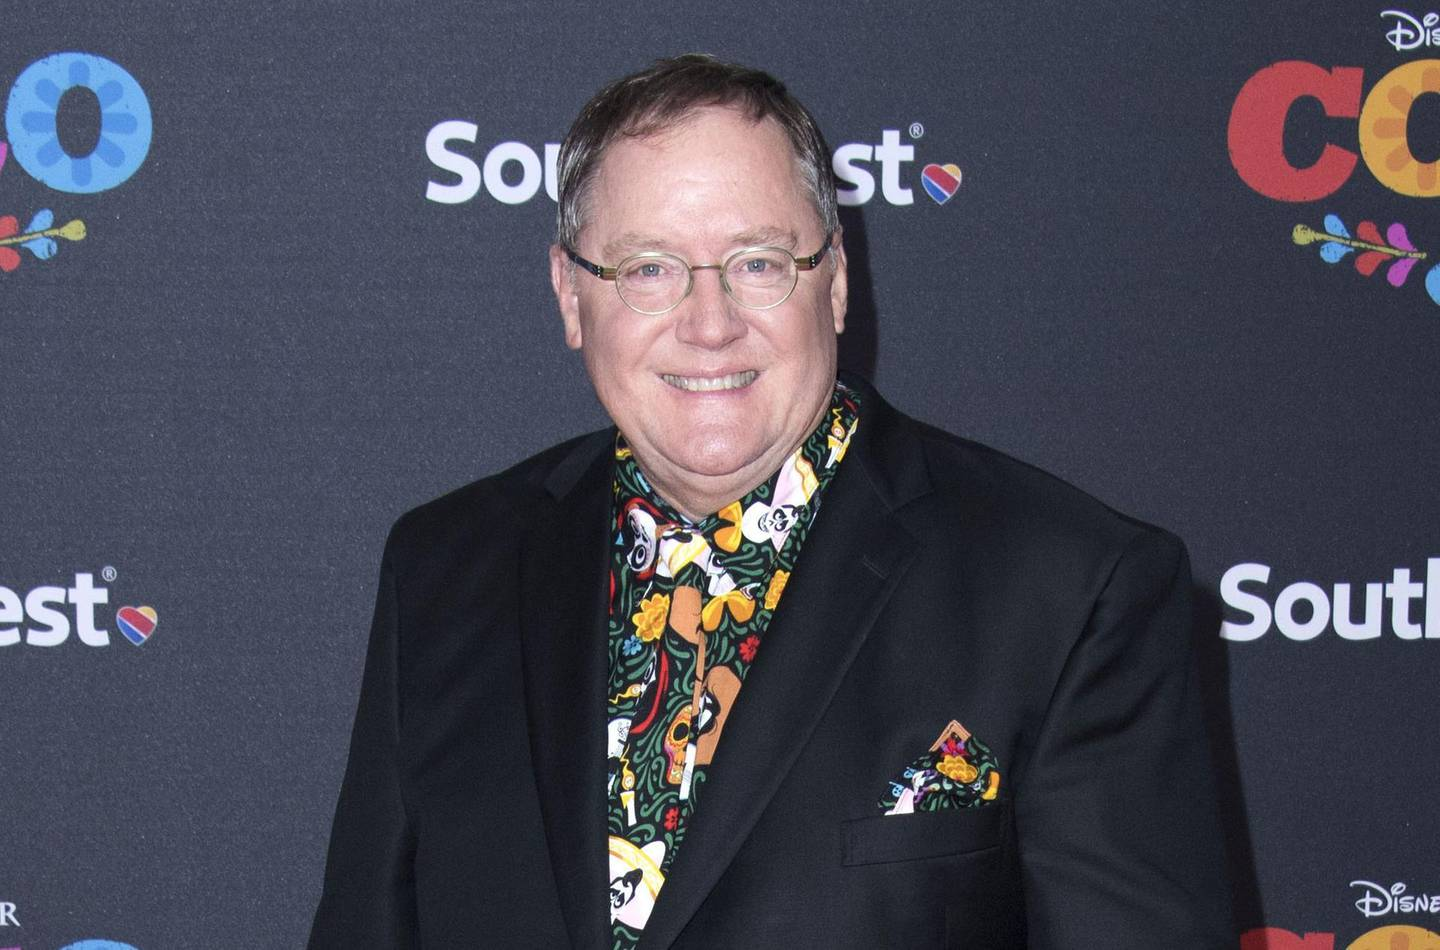 """(FILES) In this file photo taken on November 8, 2017, Executive producer John Lasseter attends the Disney Pixar's """"COCO"""" premiere in Hollywood, California. British actress Emma Thompson has quit an anticipated film produced by California's Skydance studios because it hired former Disney creative director John Lasseter, who is accused of sexual harassment, her publicist told AFP on February 26, 2019. -   / AFP / VALERIE MACON"""